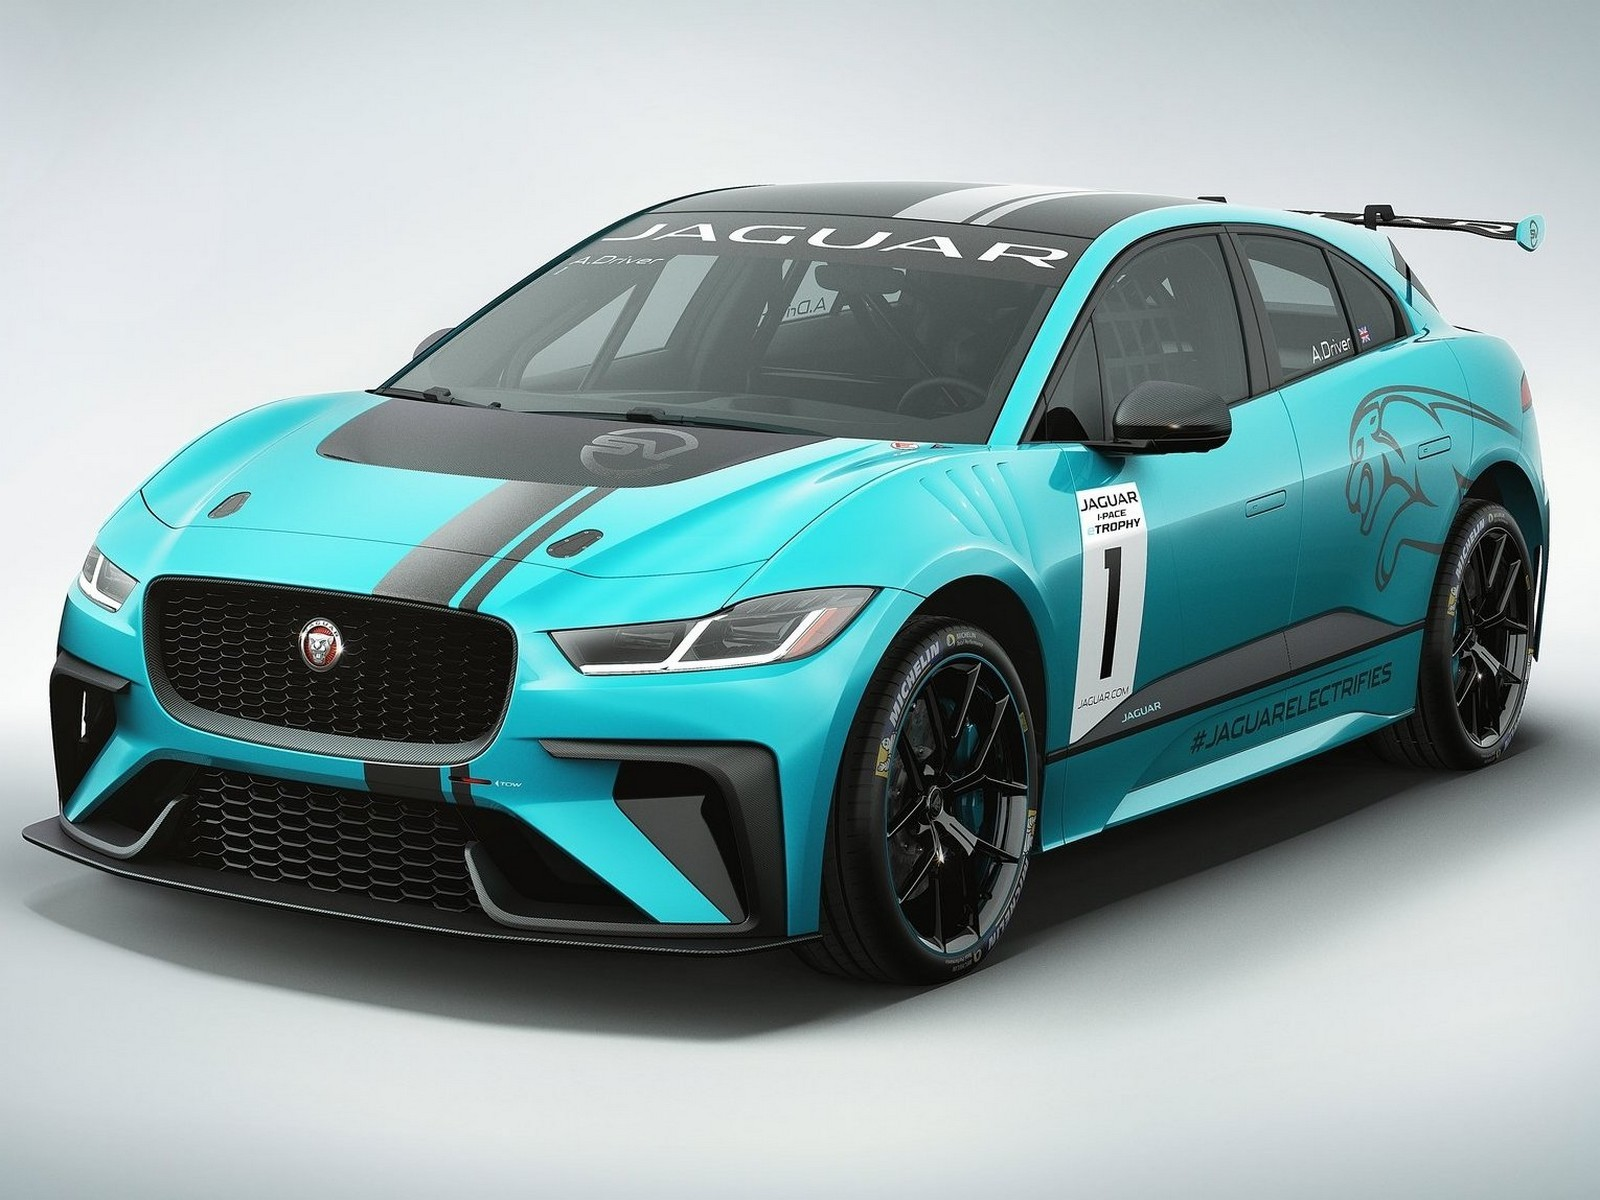 jaguar i pace etrophy racecar 2018 championnat 100 lectrique. Black Bedroom Furniture Sets. Home Design Ideas